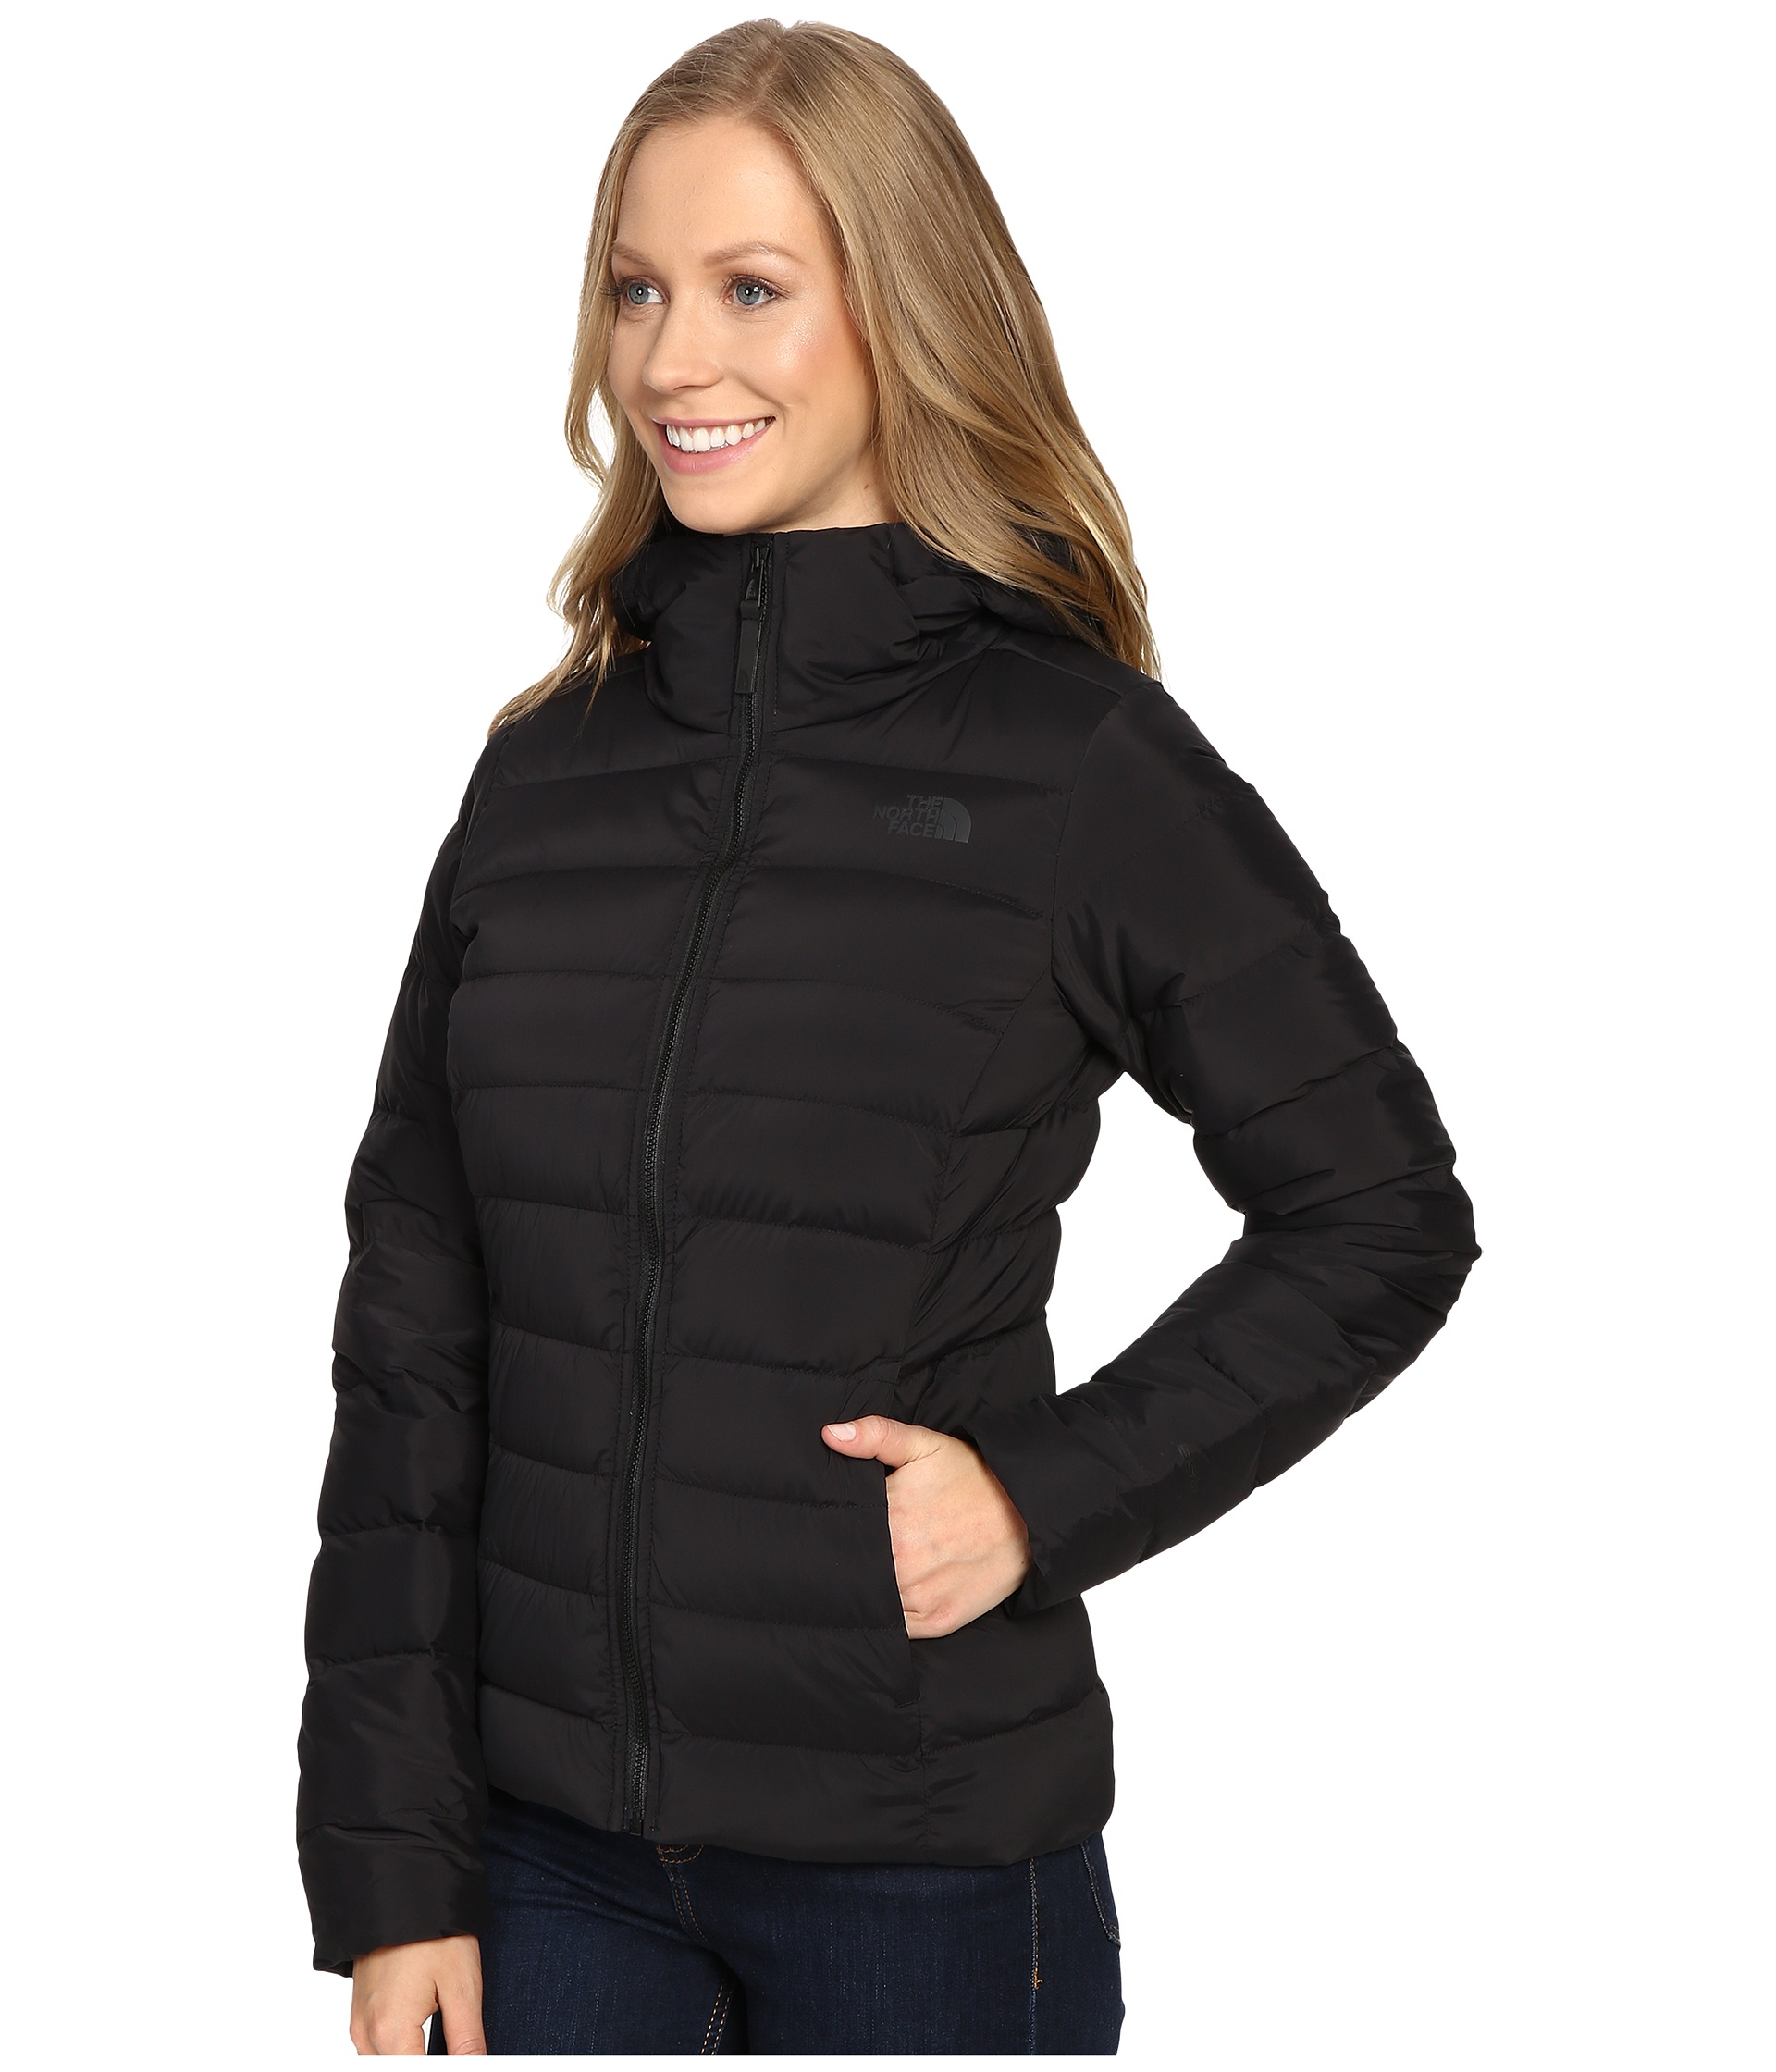 Jan 12, · Wear the jacket every day, for everything, and use the layer method. It worked really well for me under a cafe-racer jacket several years ago. It's certainly less traumatic for the leather than soaking and stretching or tugging and tugging on it.